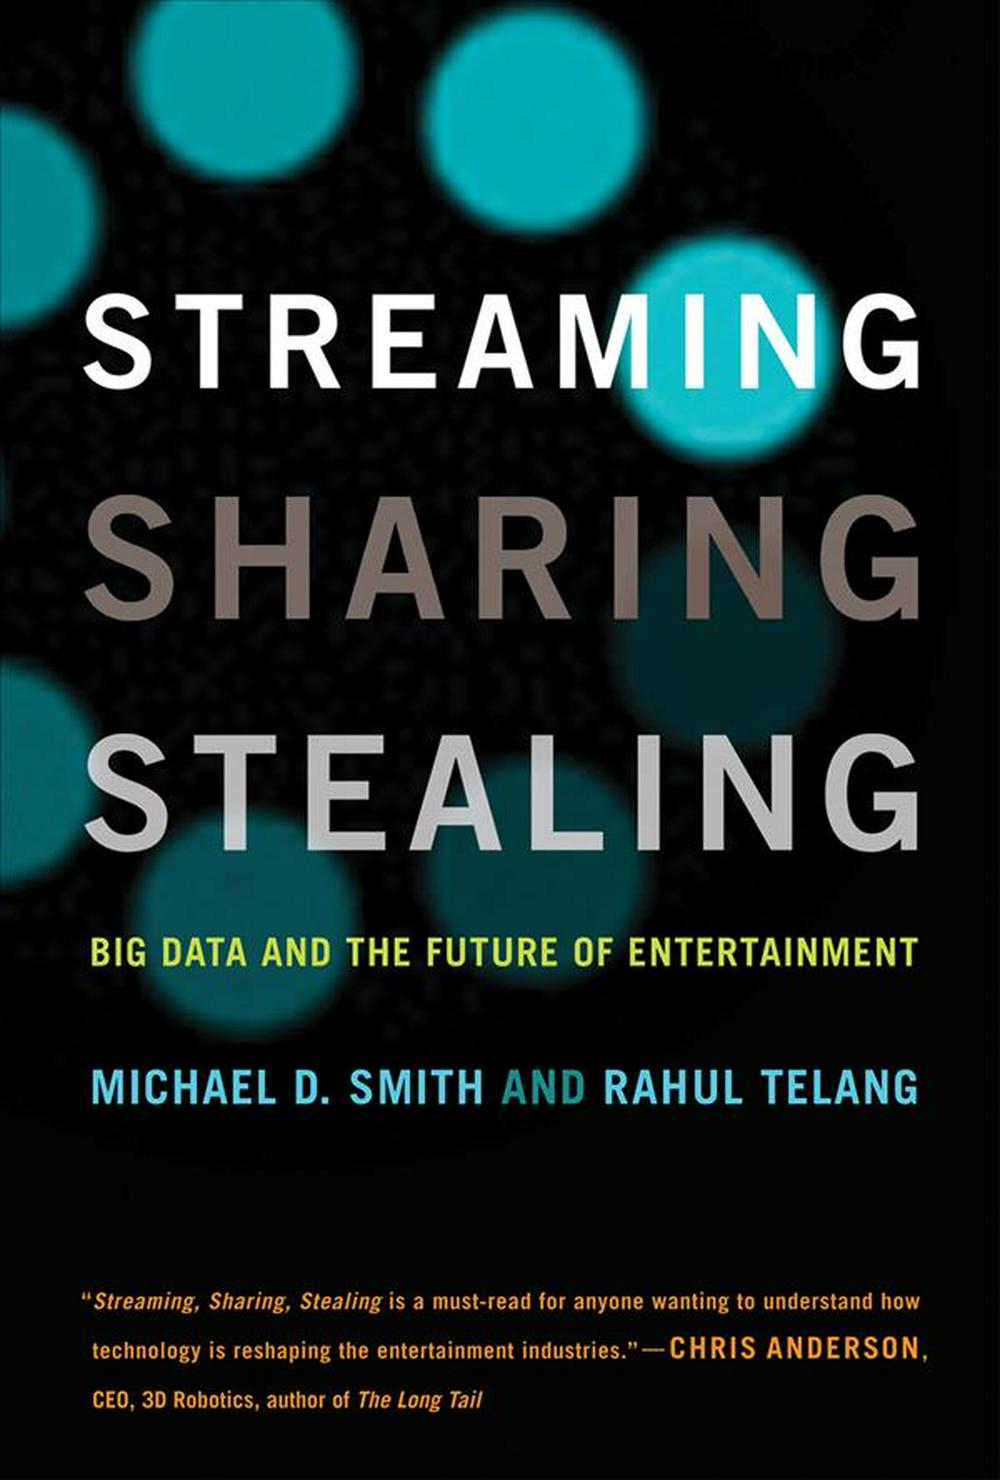 Streaming, Sharing, StealingBig Data and the Future of Entertainment